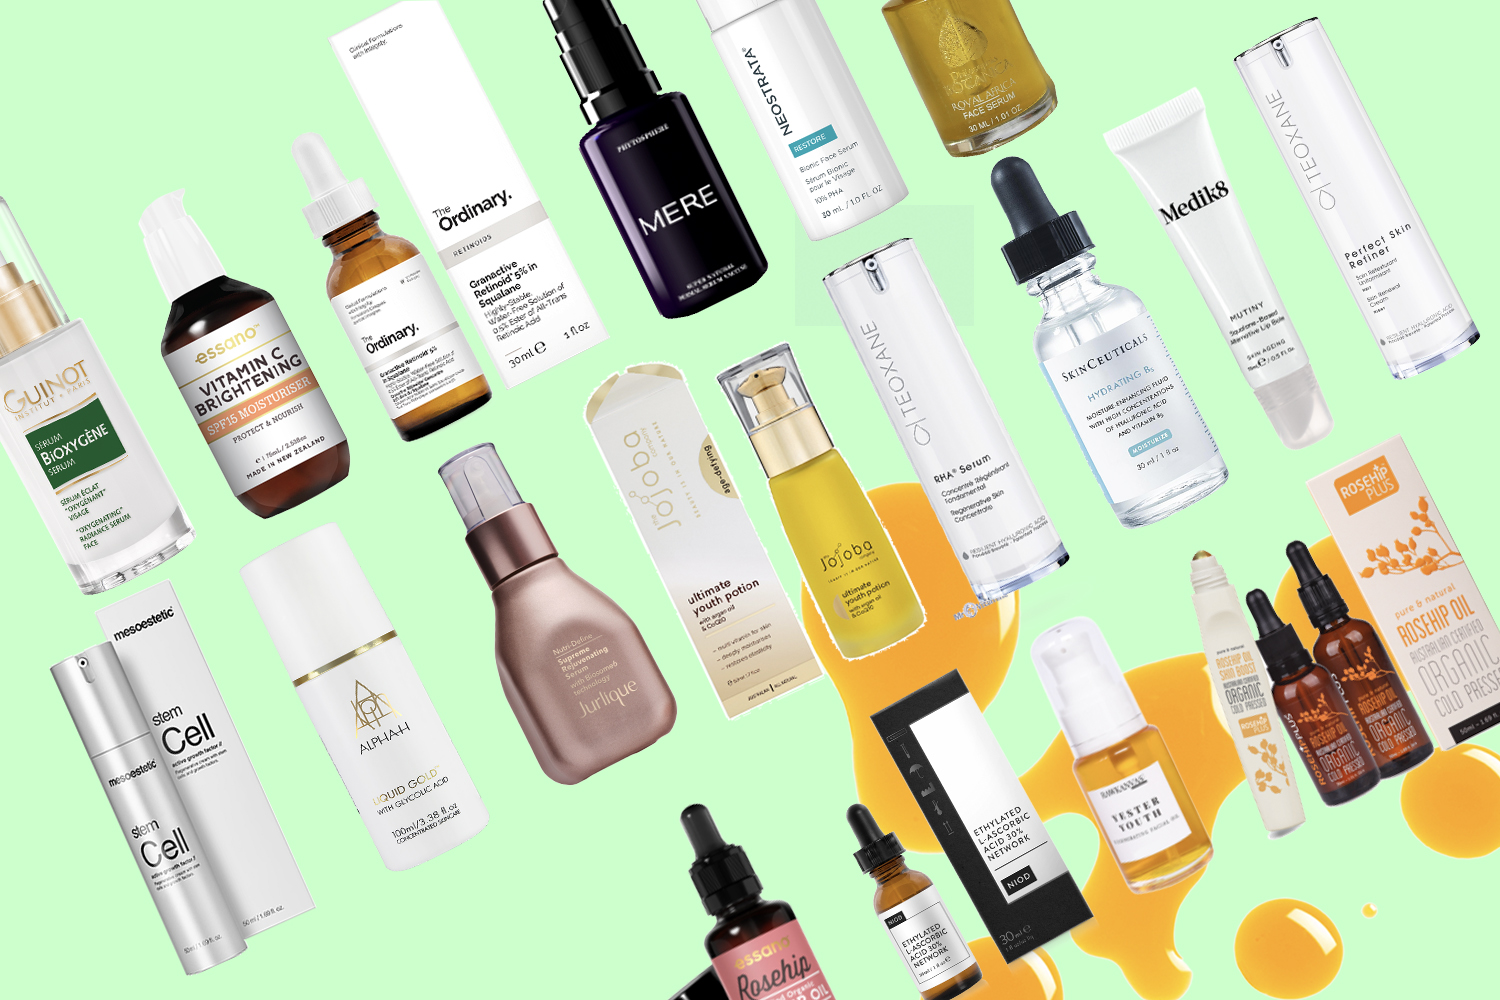 The best face oils and serums right now for youth and glow